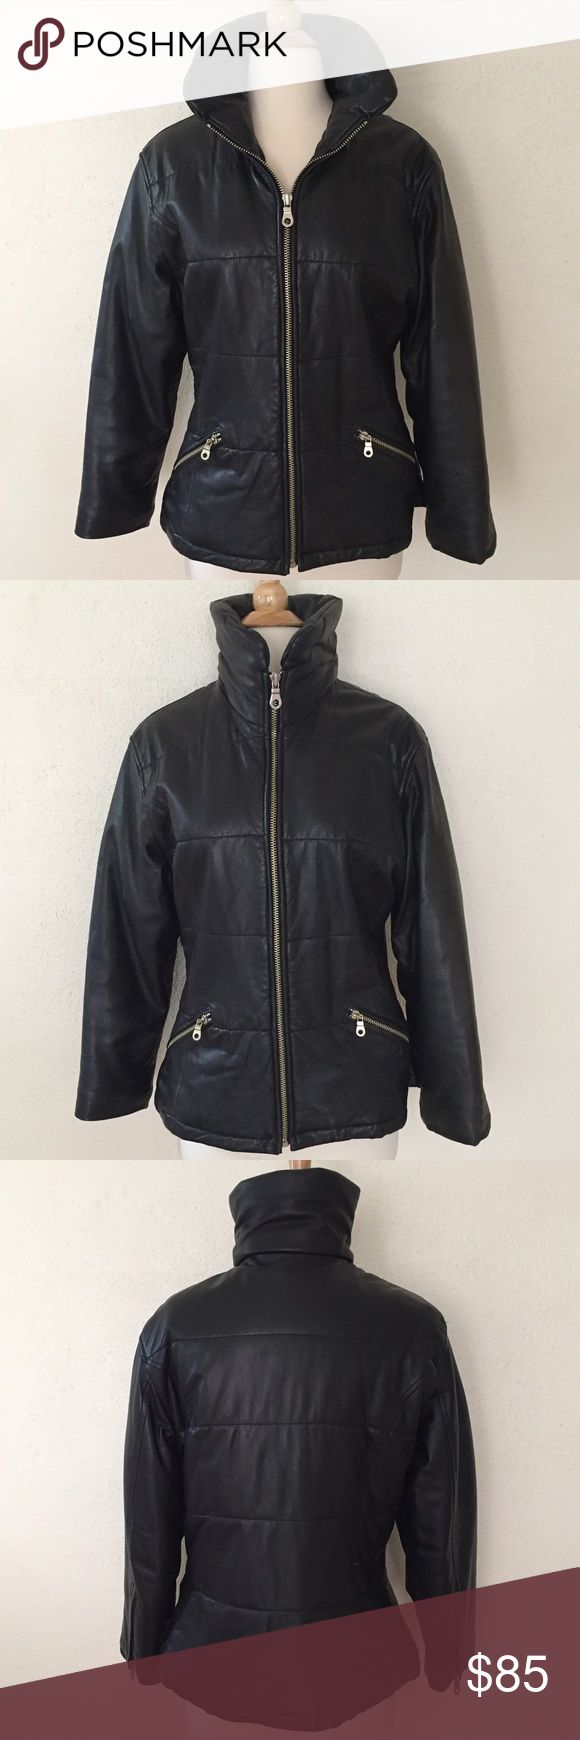 Andrew Marc vintage leather jacket Andrew Marc leather jacket from the 90's with soft, buttery panels, silver toned hardware, vertical zippers on cuffs, side pockets and a high padded collar. Pre-loved but in excellent condition. Size XS. Andrew Marc Jackets & Coats